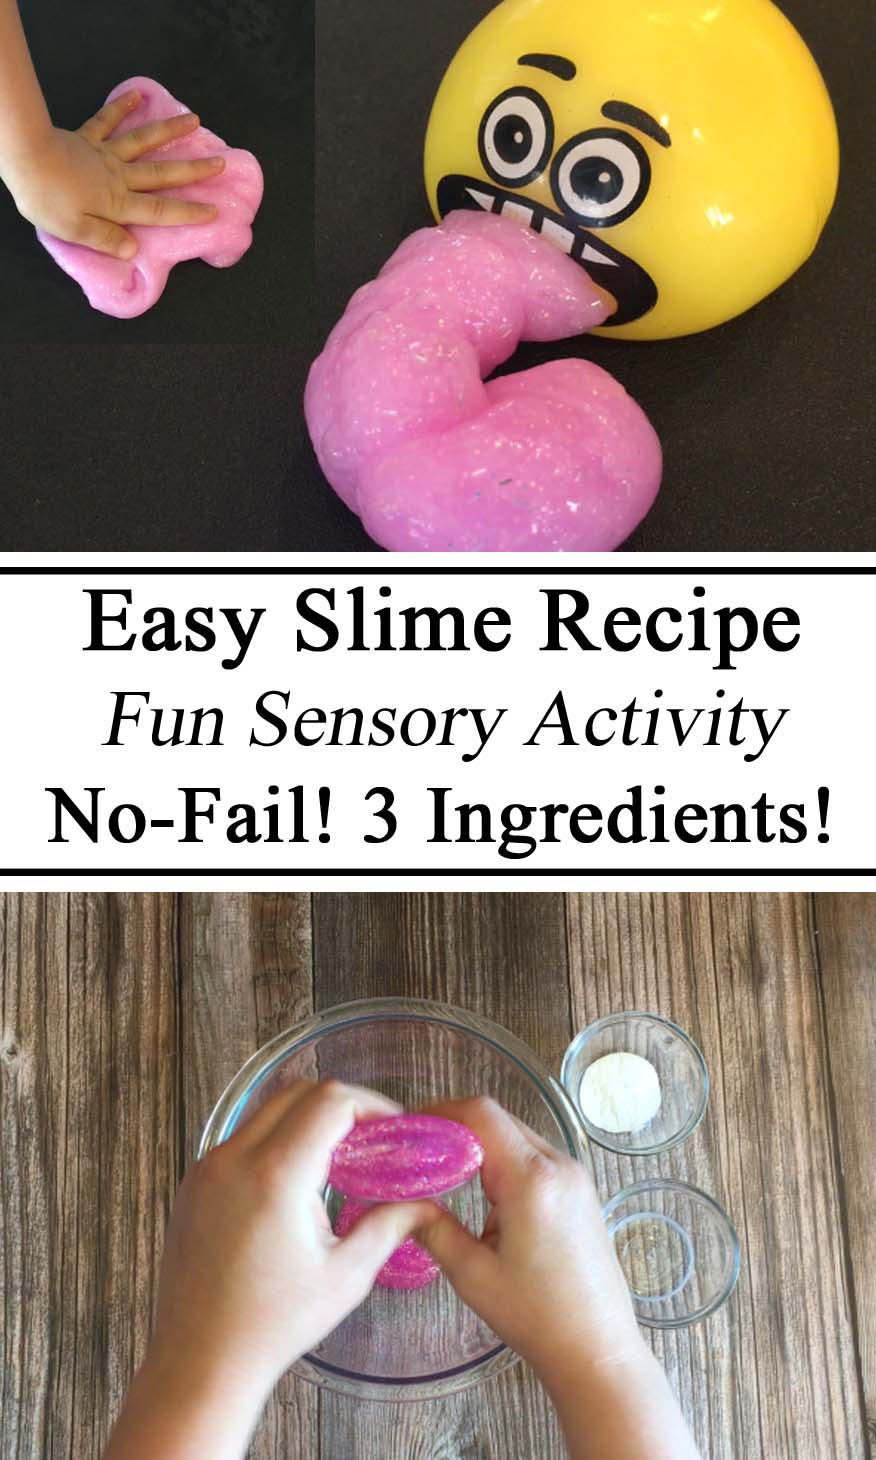 Slime, Science for Kids, Easy Recipe, STEM Education, Sensory Activity, Sensory Play, Toddlers, Kids, Preschool, Kindergarten, Homeschool, Homeschooling, Messy Play, Hands on Learning, Educational Play, Montessori, Waldorf